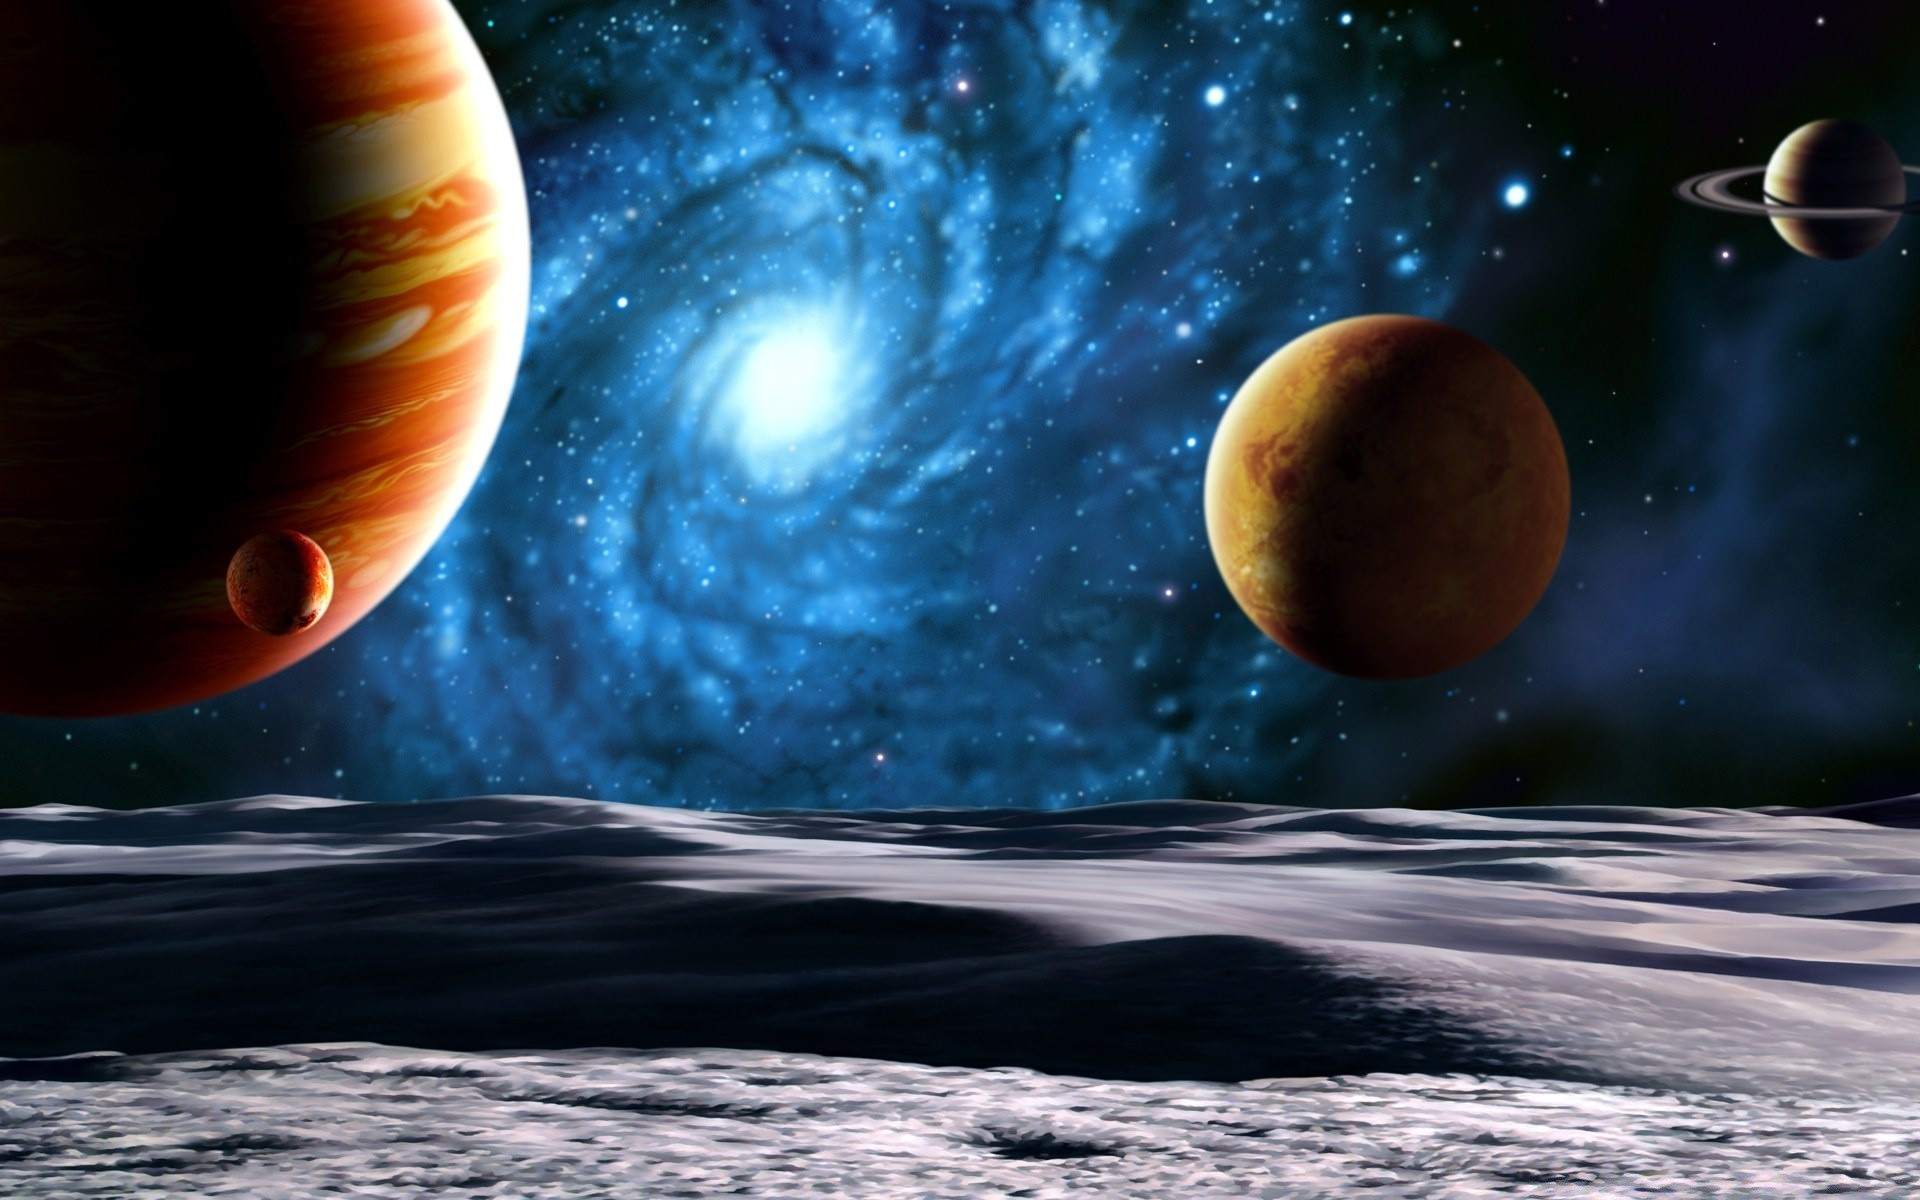 planets and space - HD1680×1050